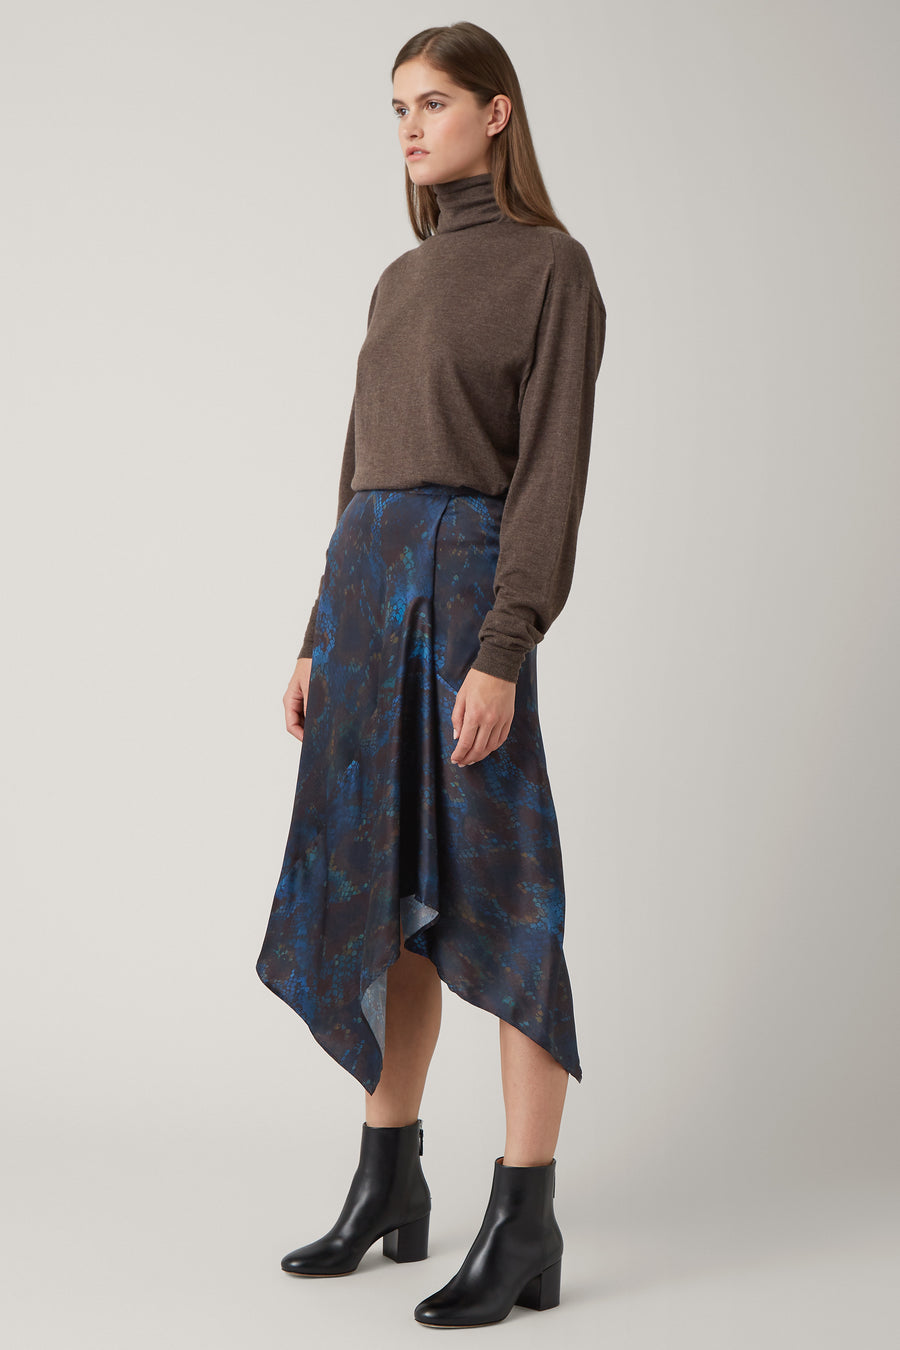 Ink/Nutmeg Irina Silk Printed Skirt